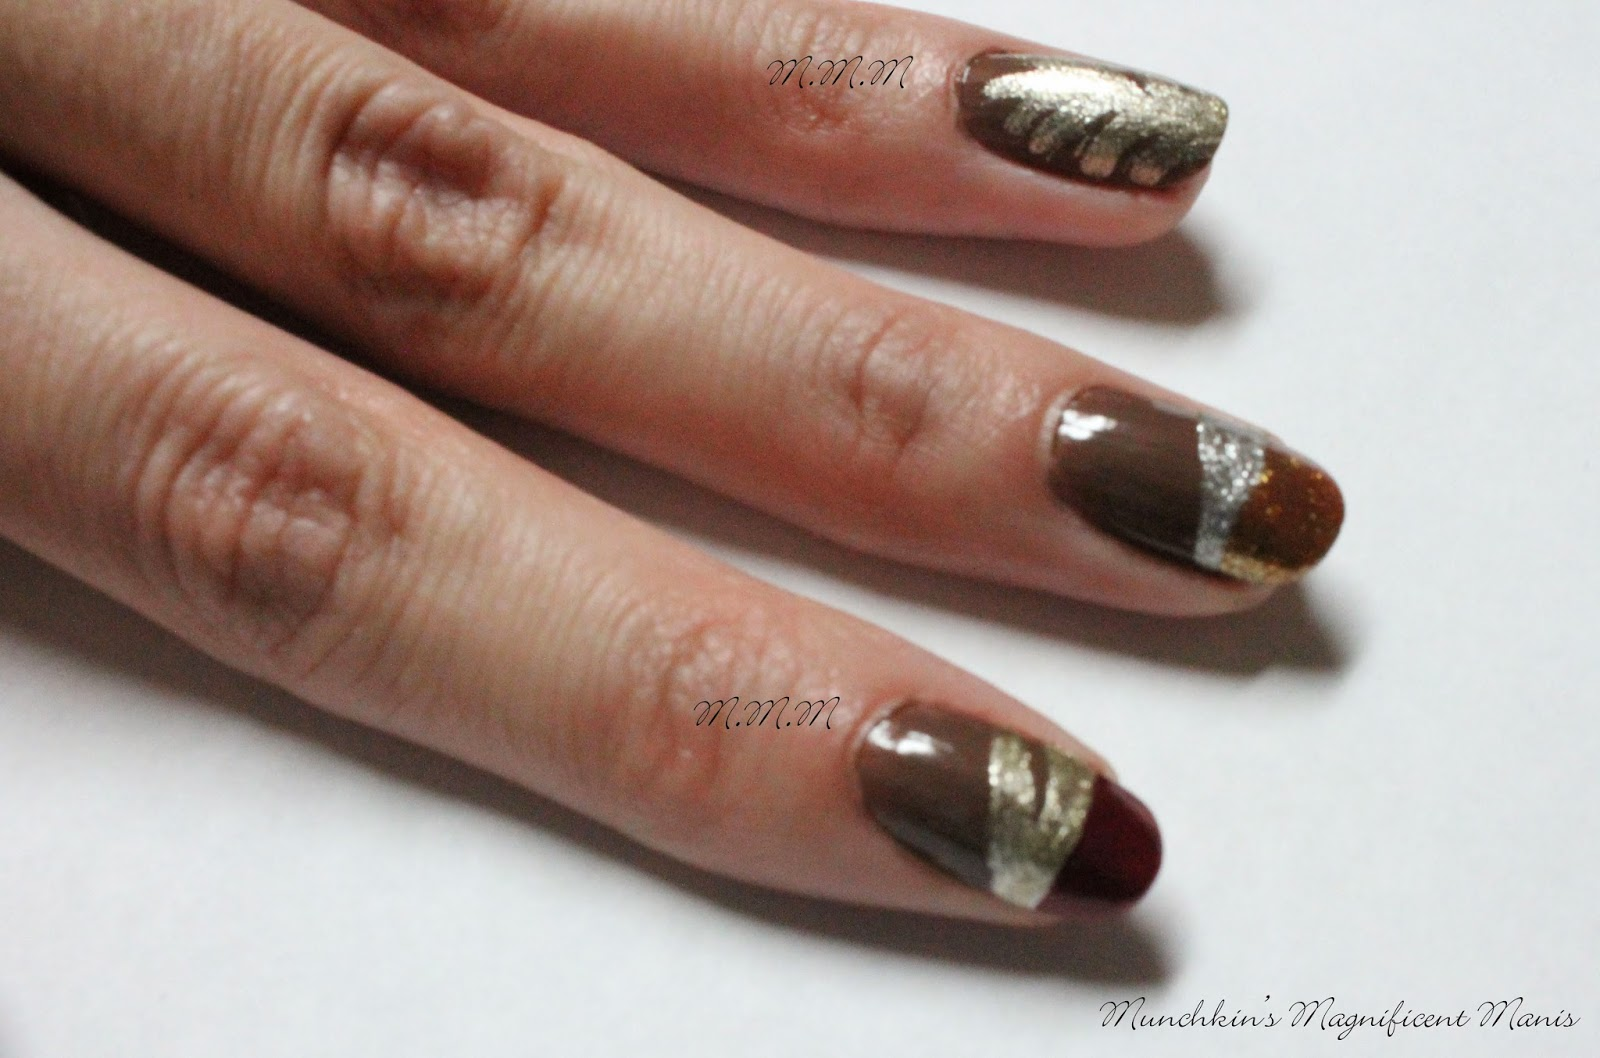 Munchkins magnificent manis october 2014 then once again at the end of that line draw a slanted line that goes to the other end of the nail its okay if the line is kind of thick prinsesfo Image collections